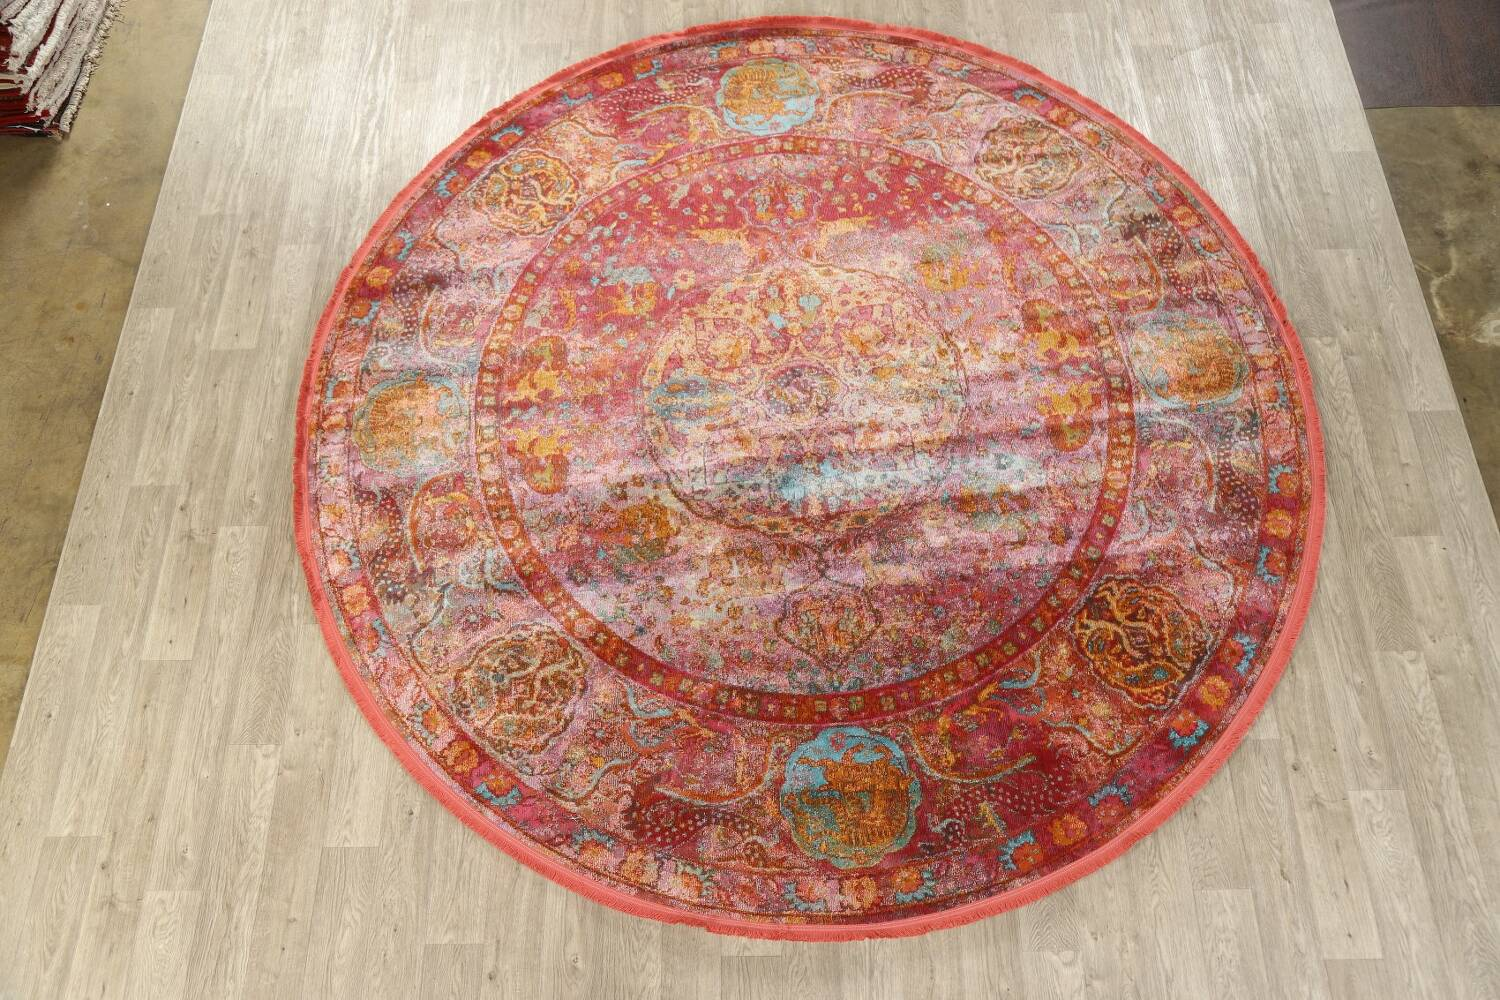 Hunting Design Pictorial Distressed Heat-Set Area Rugs image 14